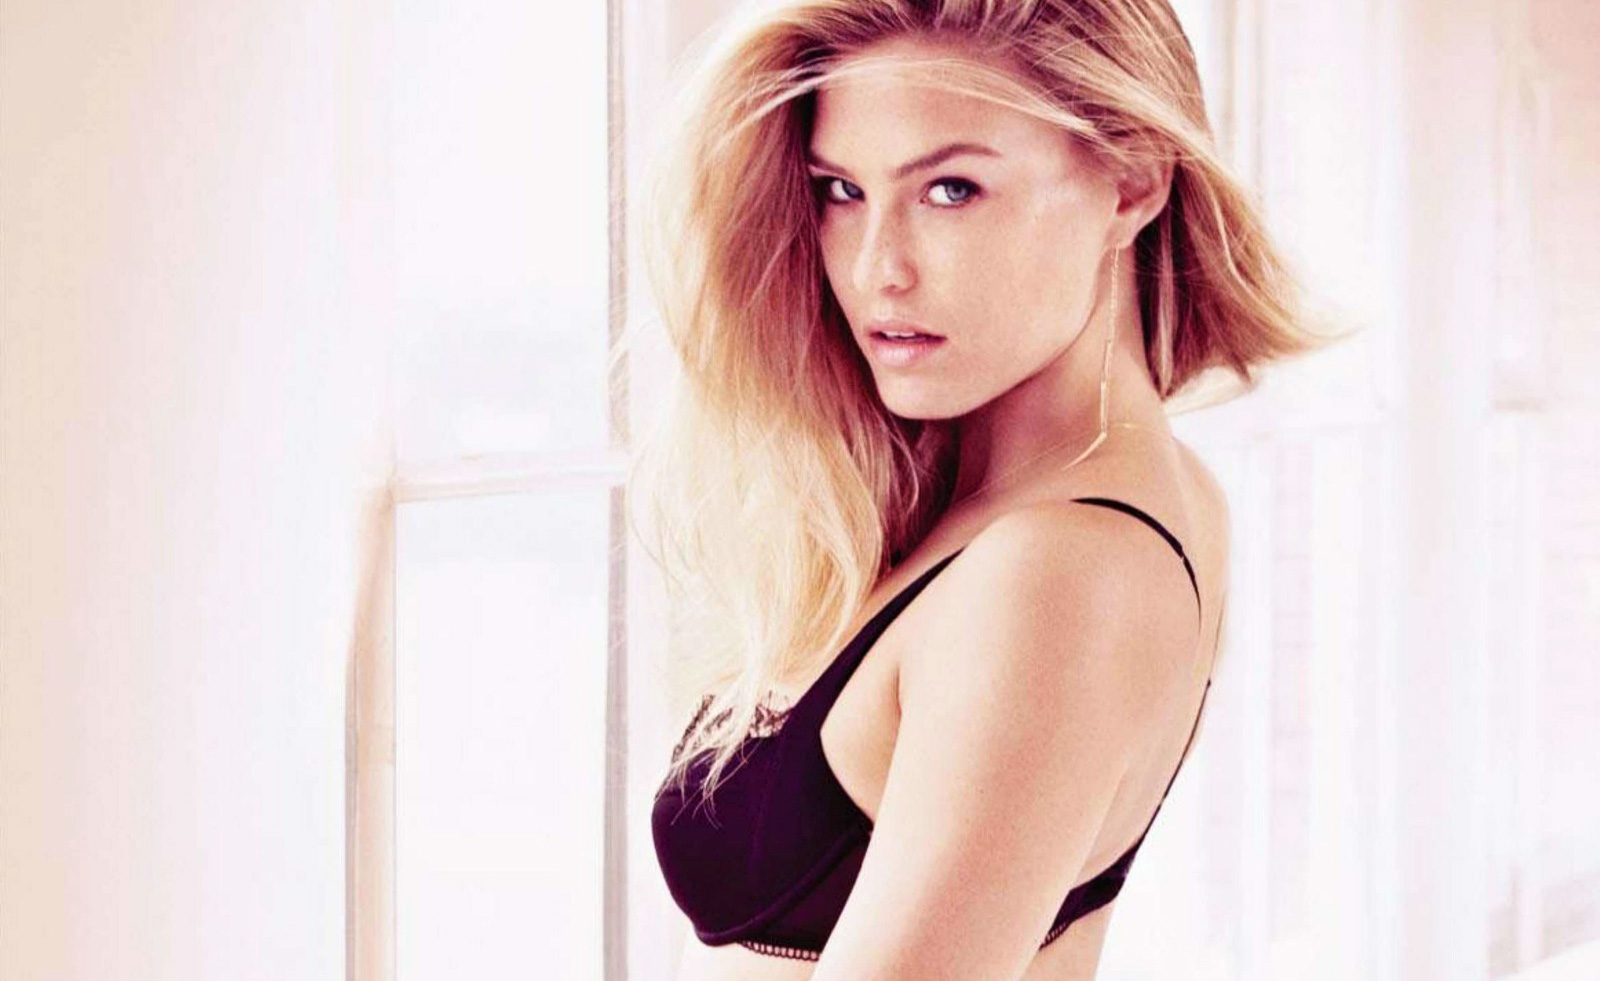 Indian Cute Girl Wallpaper Download Bar Refaeli Very Hot Wallpaper Hot And Sexy Wallpapers